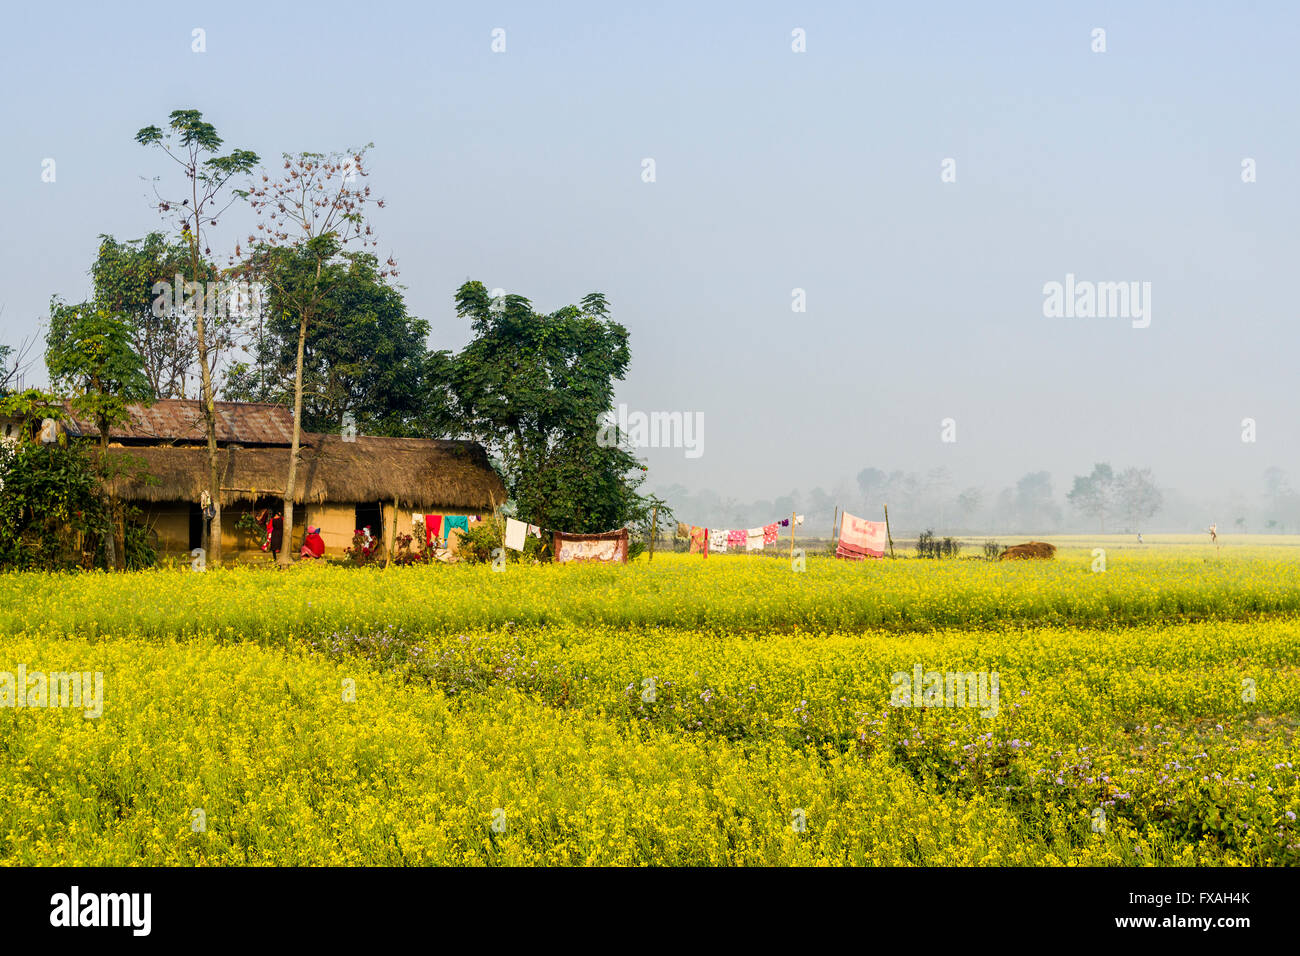 A farmers house standing in the middle of a yellow mustard field in the Terai plains, Sauraha, Chitwan, Nepal Stock Photo